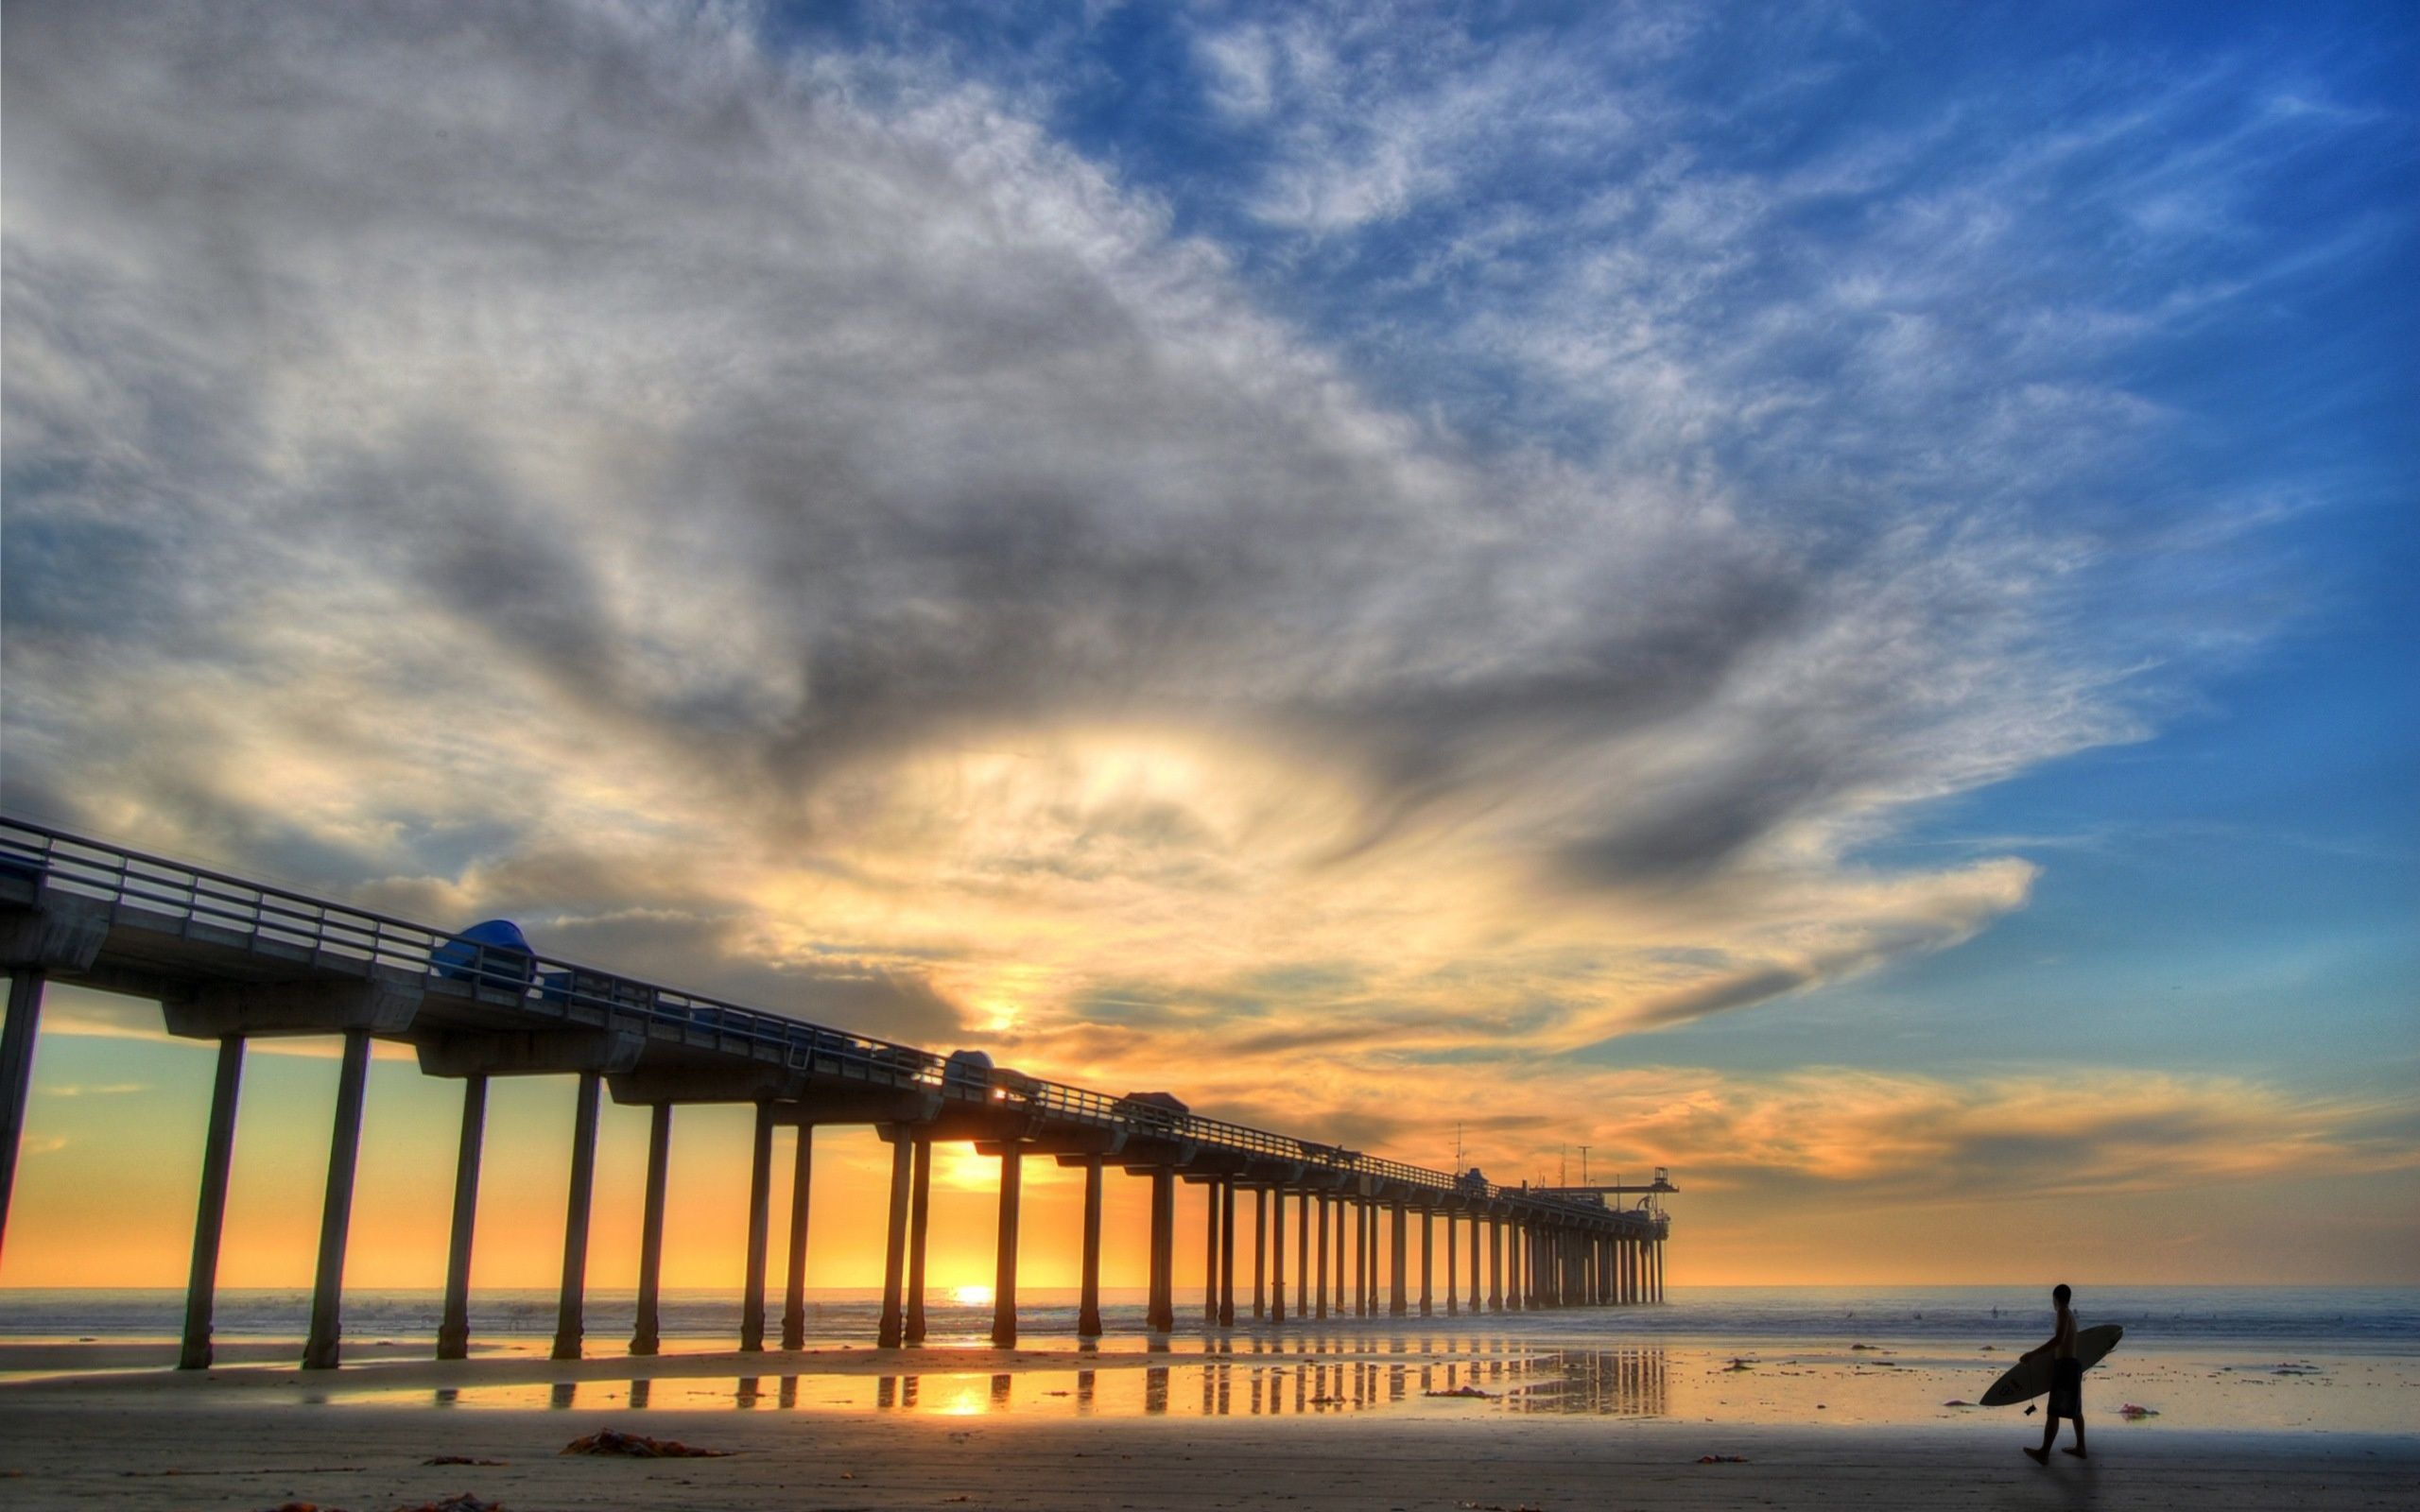 Surfer And Pier At Sunrise Wallpaper